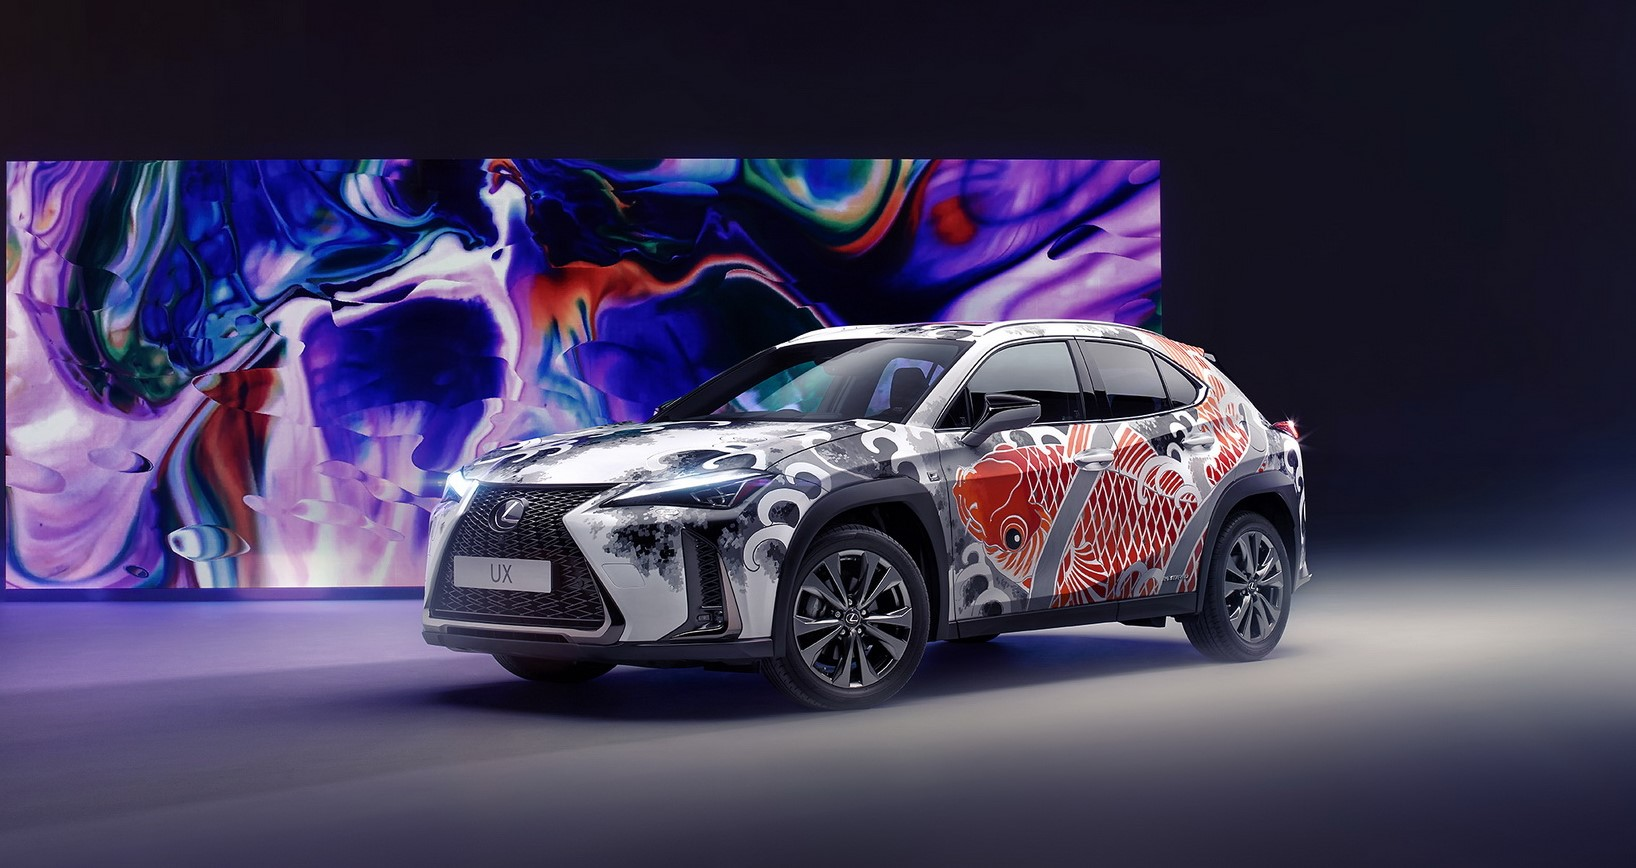 2020-lexus-ux-tatooted-car-1